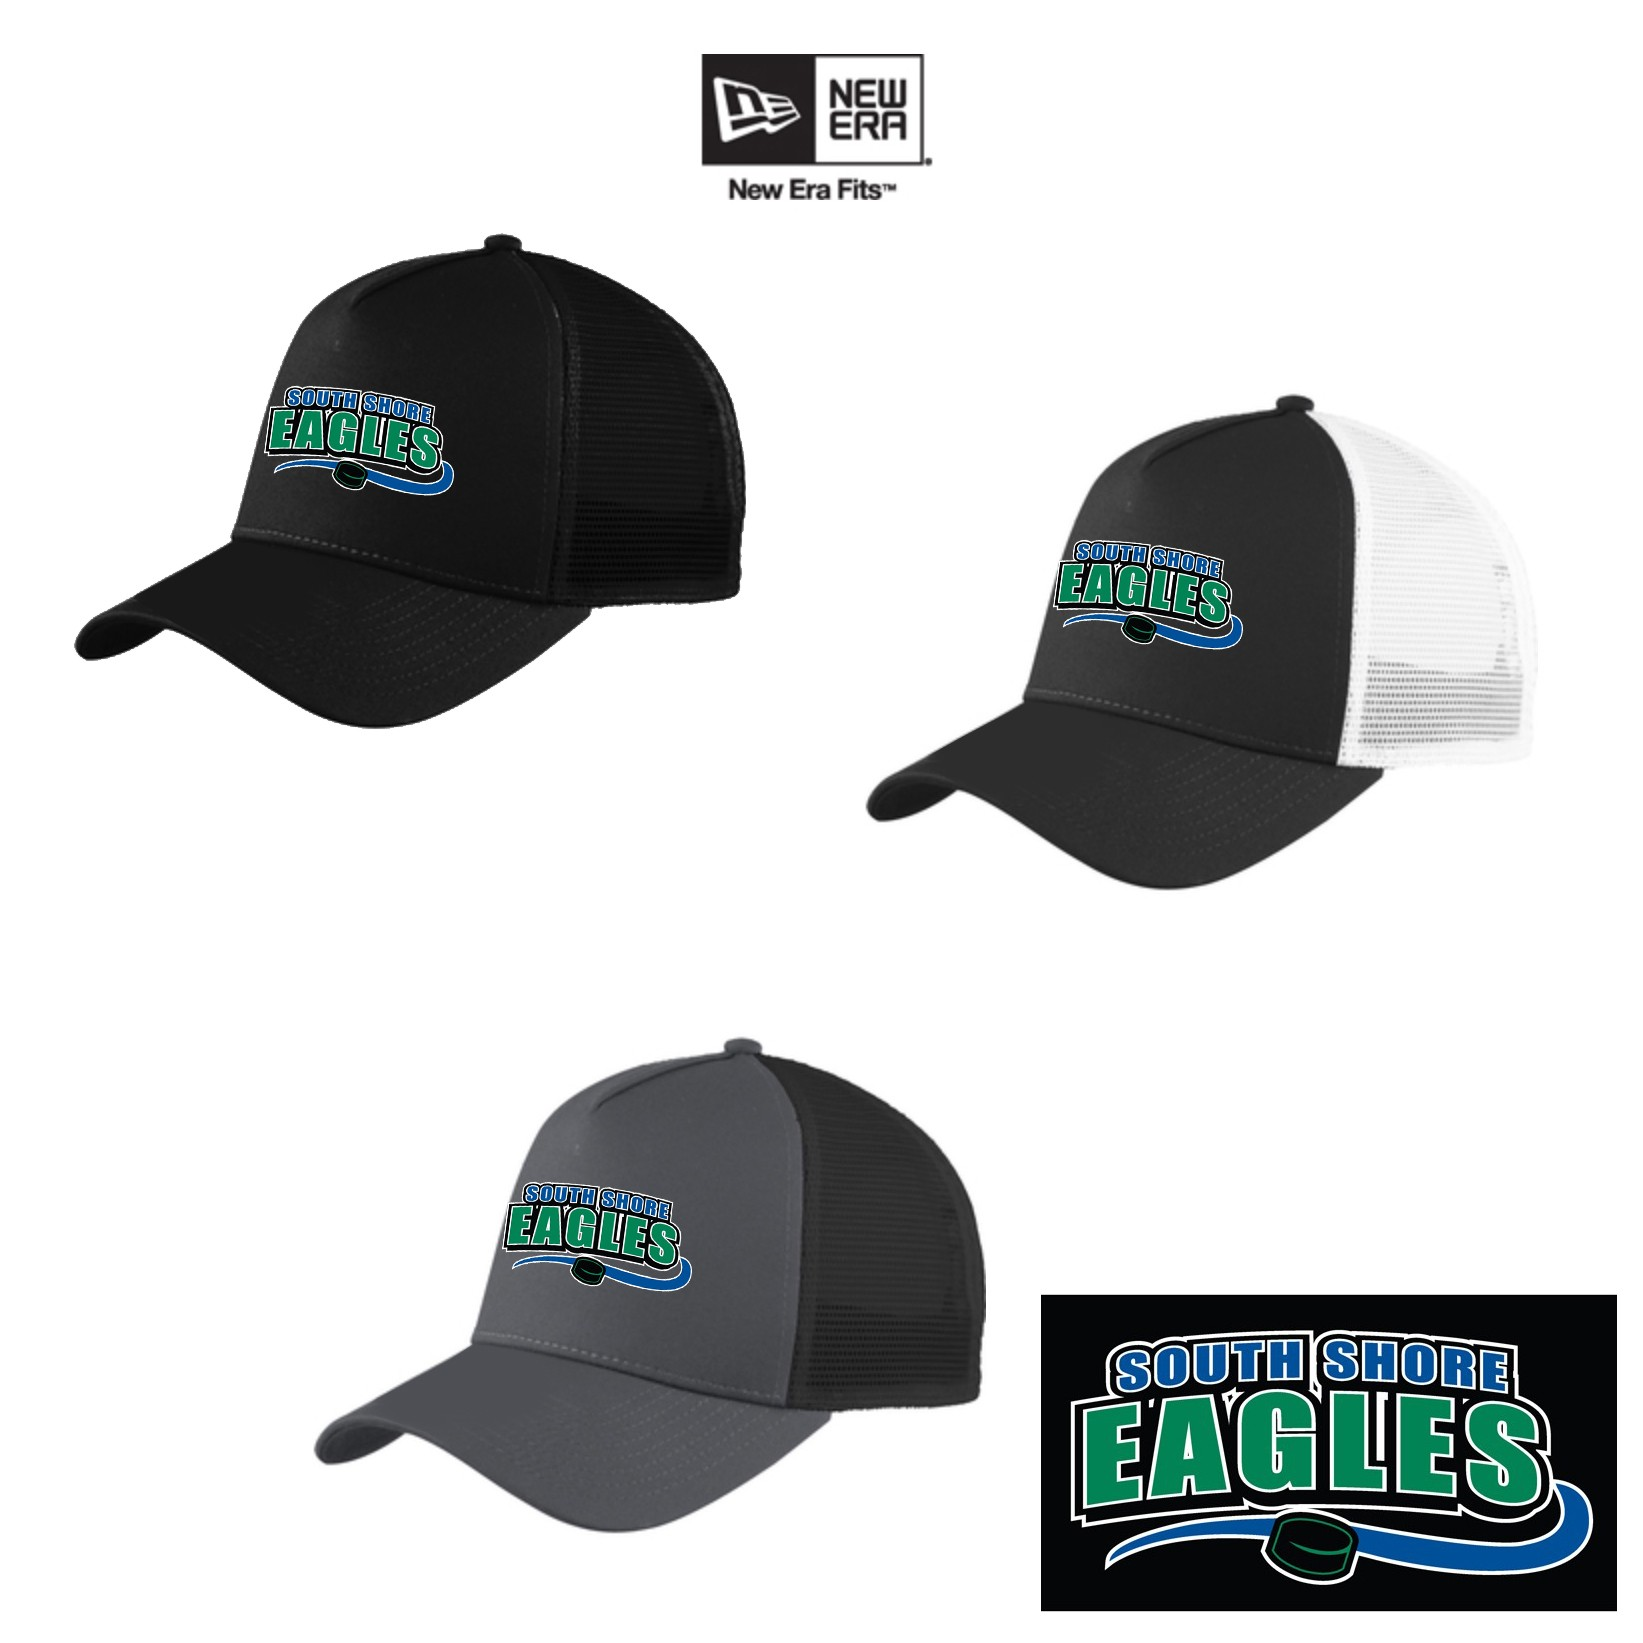 South Shore Eagles New Era® Snapback Trucker Cap NE205